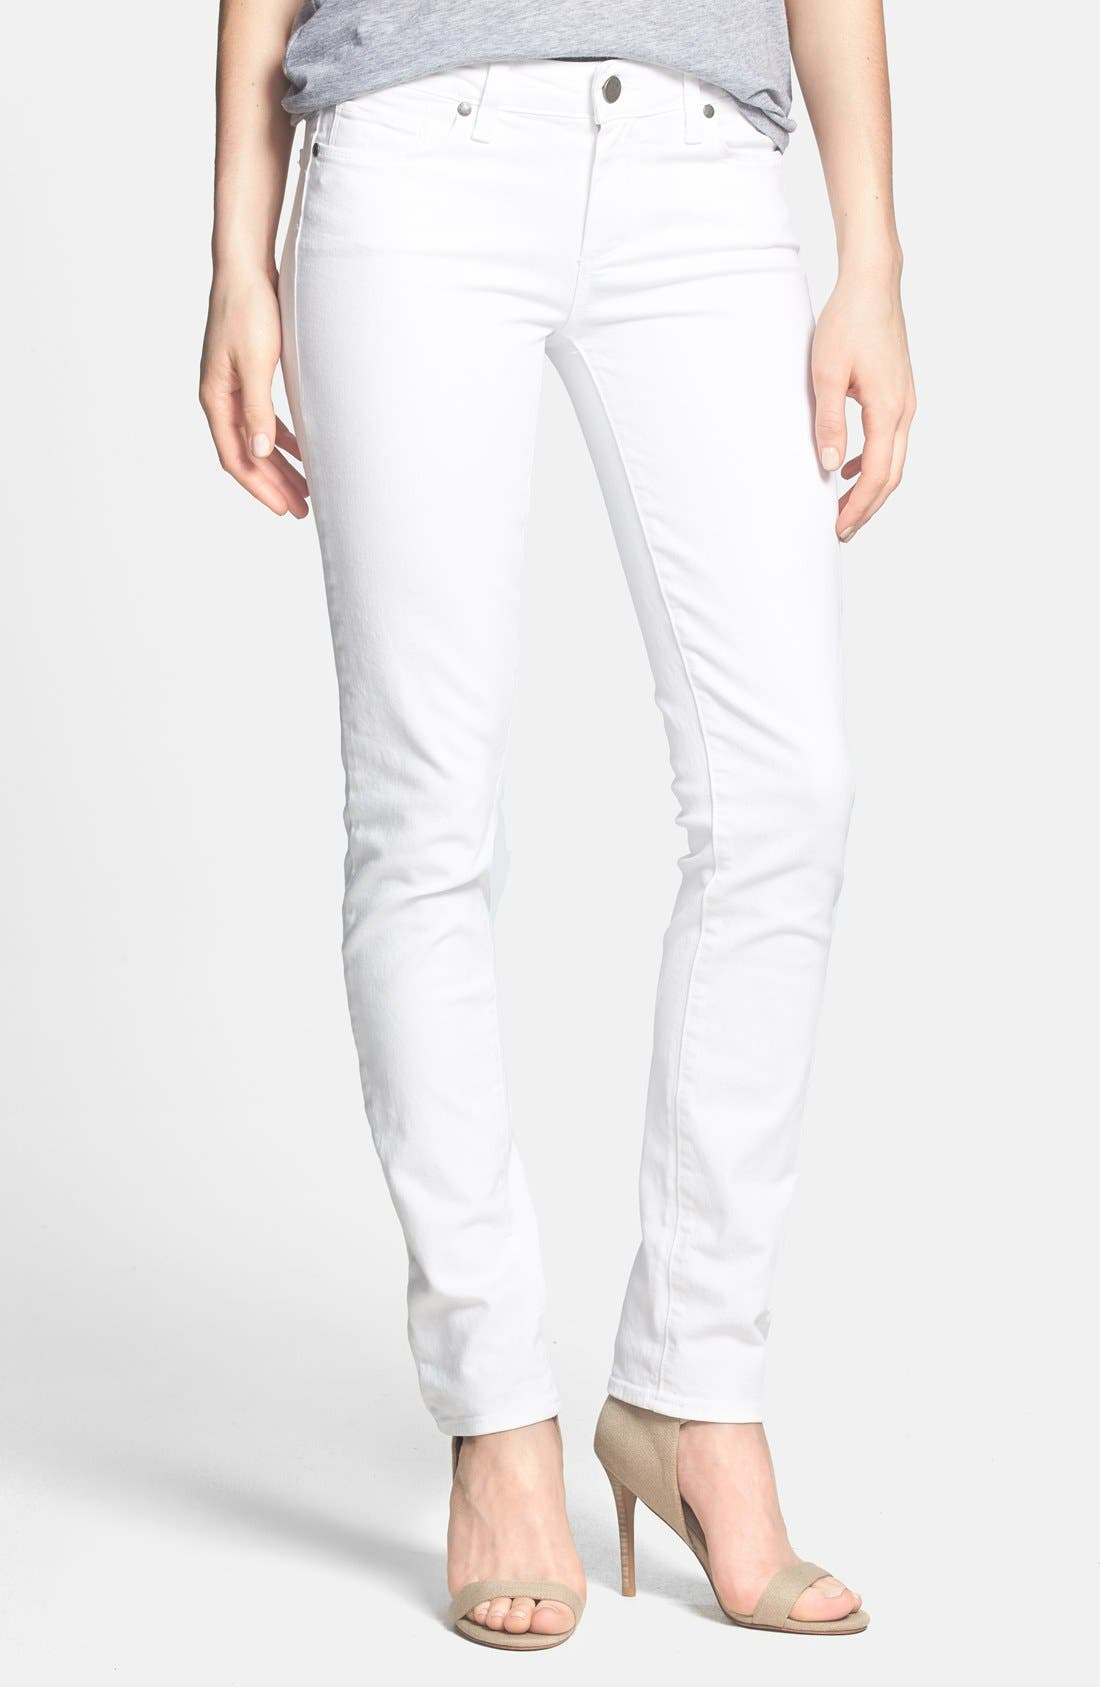 Alternate Image 1 Selected - PAIGE 'Skyline' Skinny Jeans (Optic White)